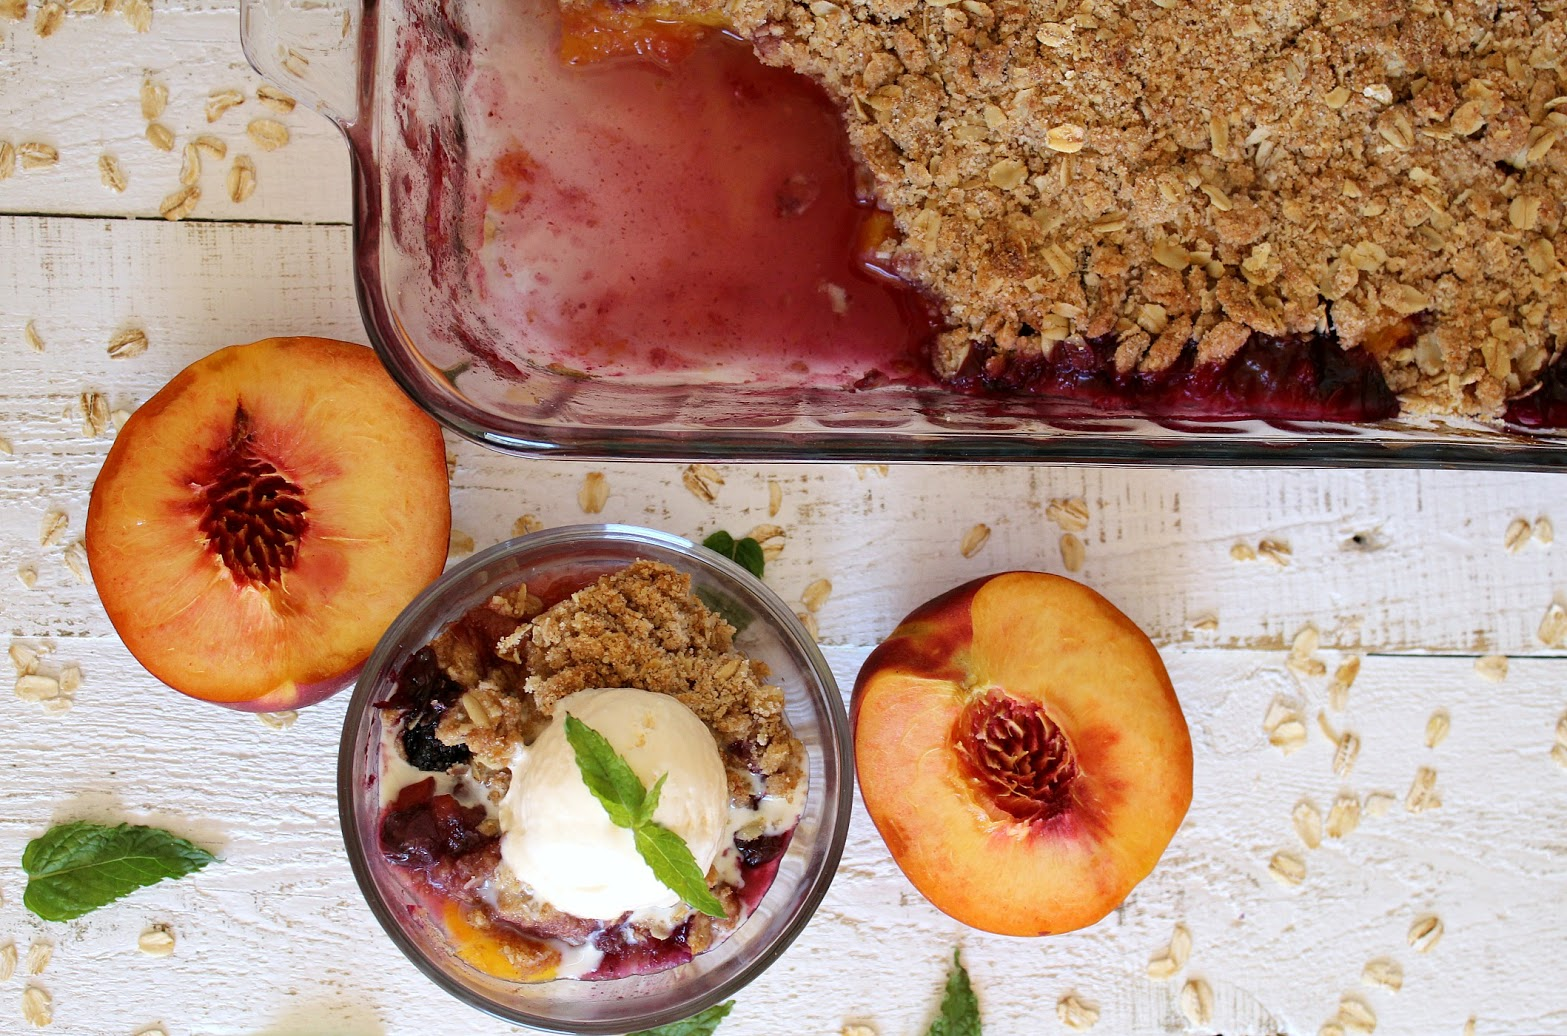 This peach and blueberry crumble makes a perfect summer dessert, especially when topped with a scoop of vanilla ice cream.